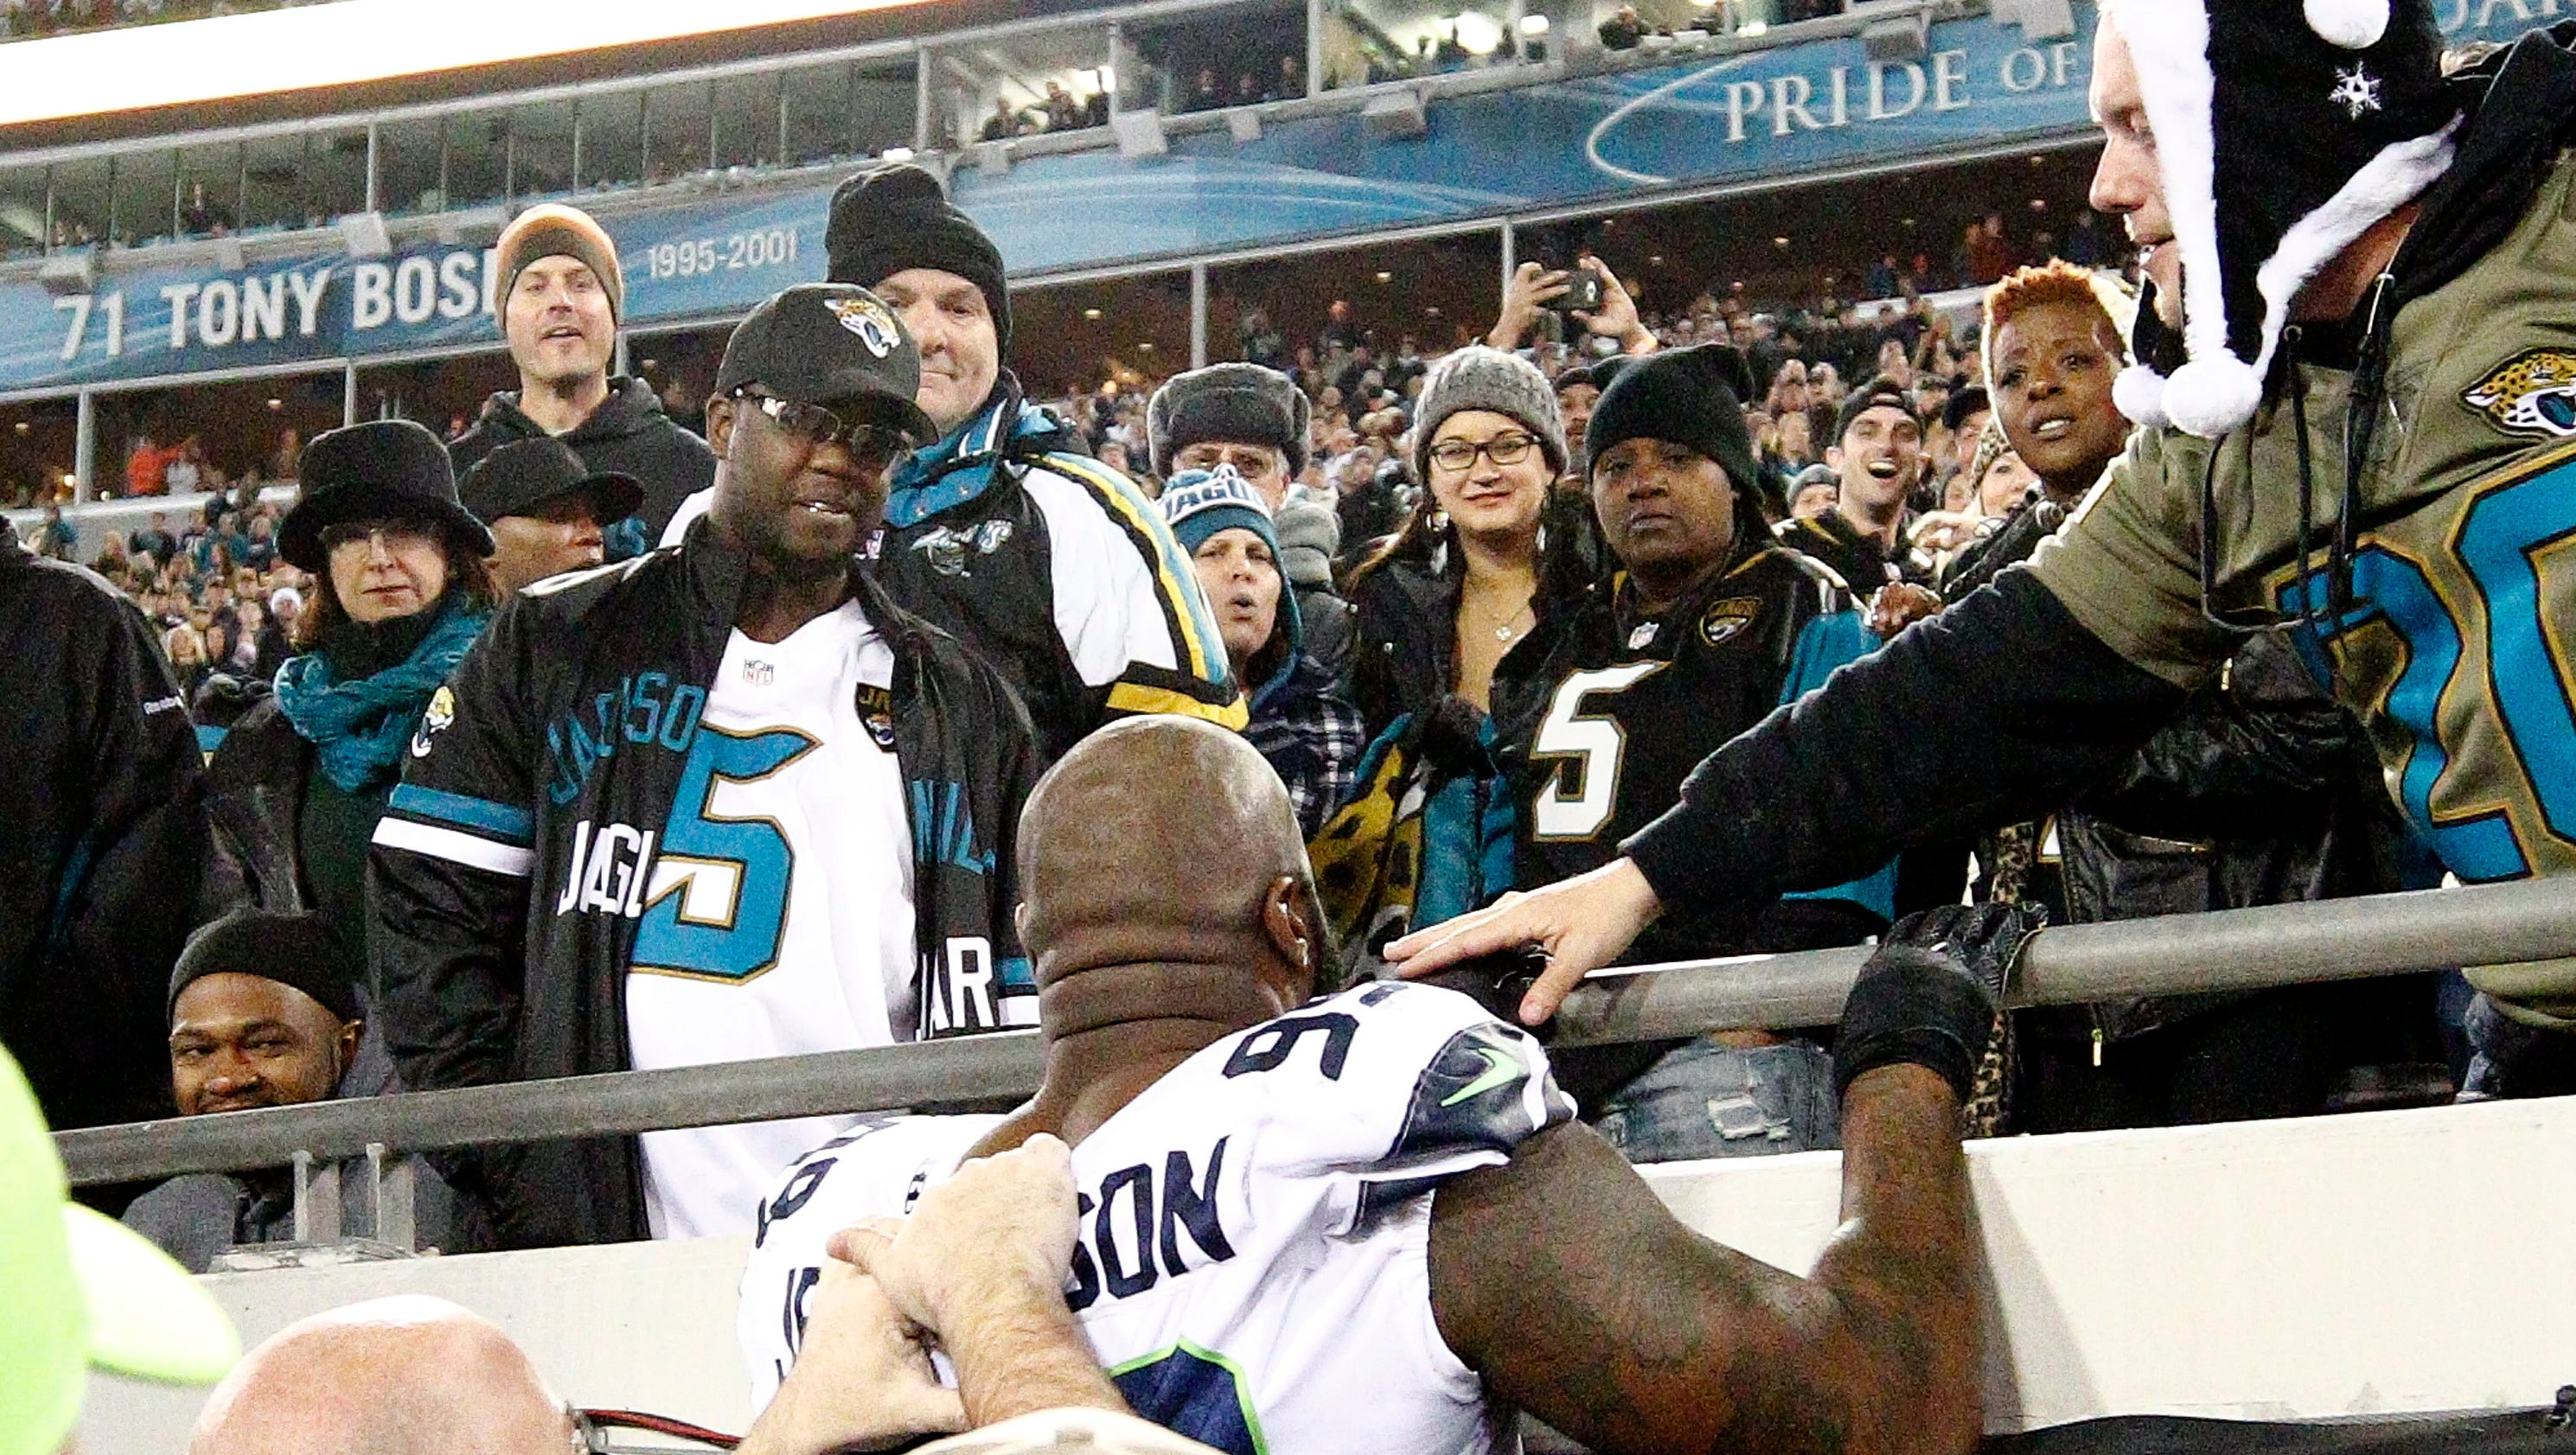 Jaguars ban four fans who threw objects in Seahawks game